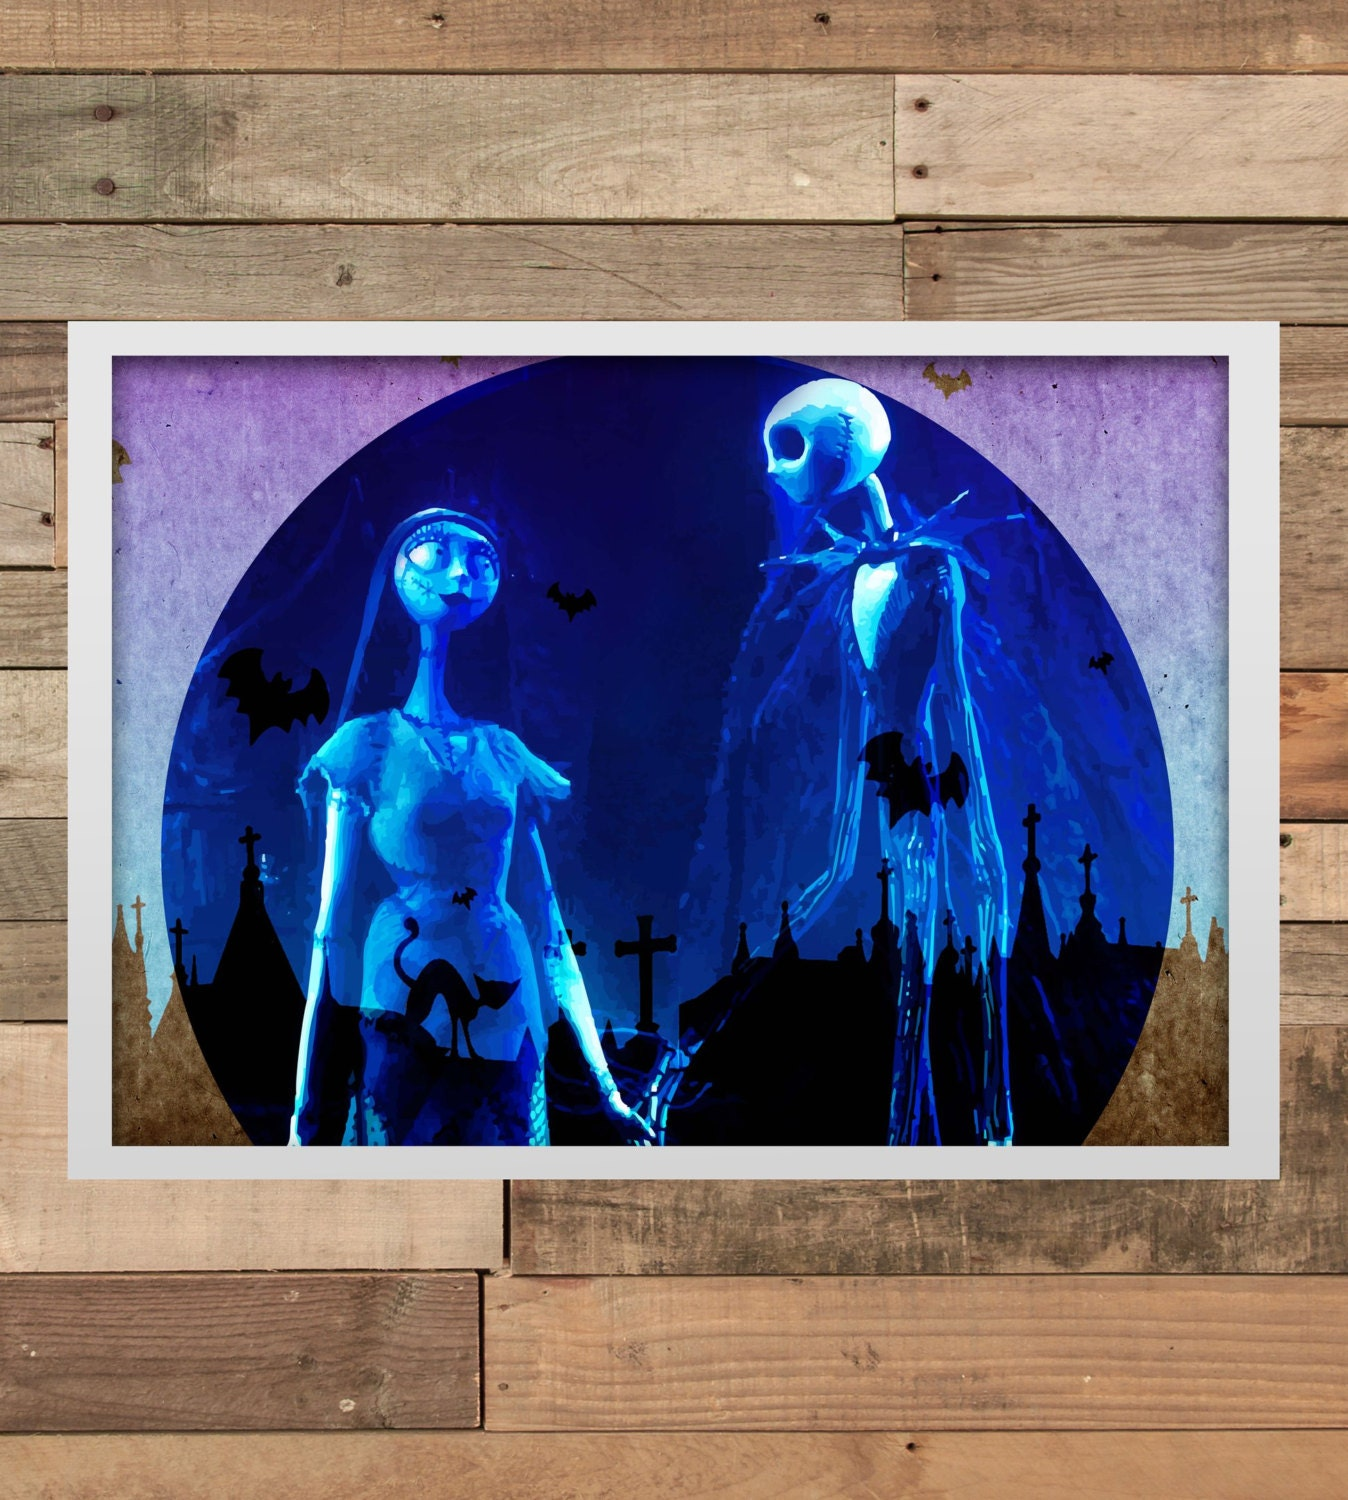 Nightmare before christmas decorations 2015 dereviewsitecom 7ttroa7g - Nightmare Before Christmas Wall Art Print Home Decor Nightmare Before Christmas Decor Archives Vinylevolution Com